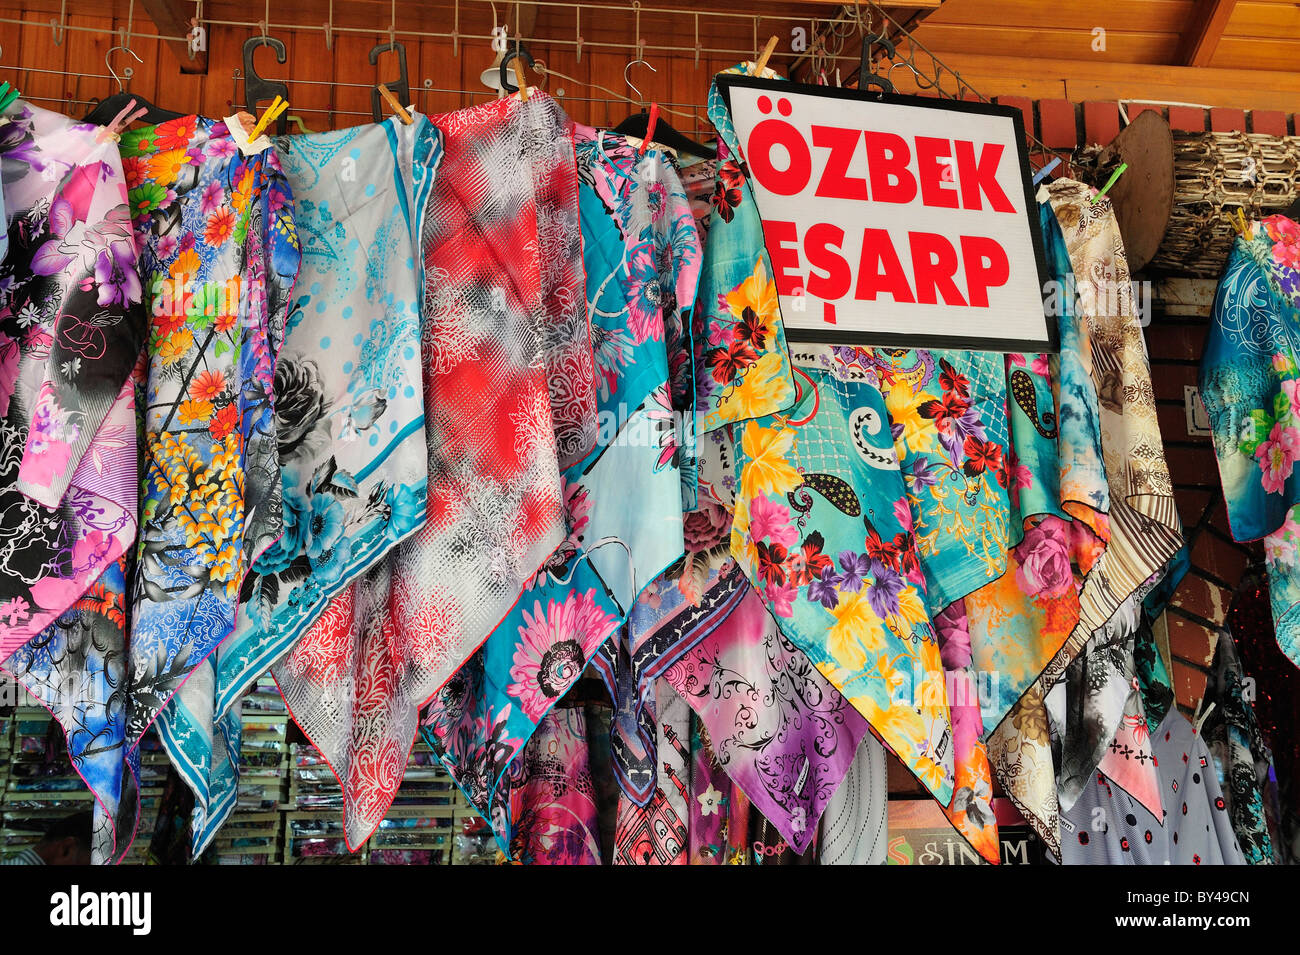 Scarf shop, bazaar, Urfa, Turkey 10092336805 Stock Photo, Royalty ...